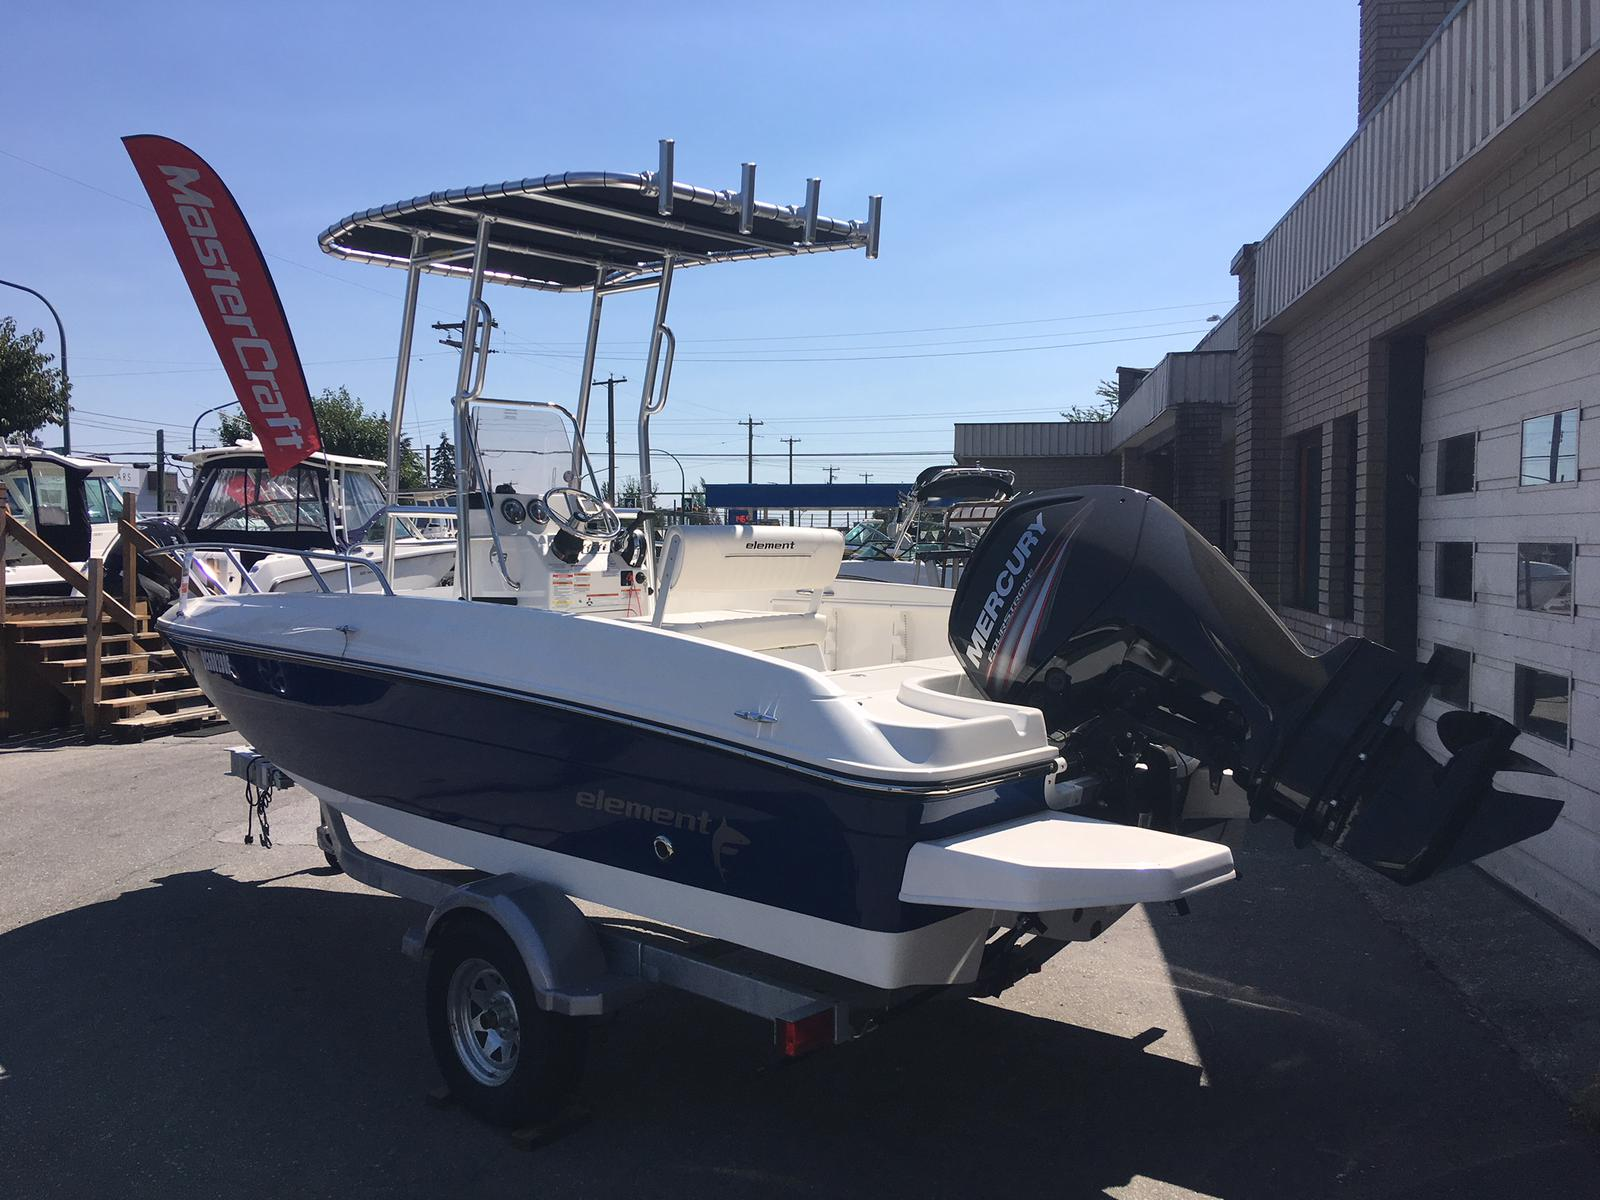 2018 Bayliner boat for sale, model of the boat is Element F18 & Image # 2 of 6